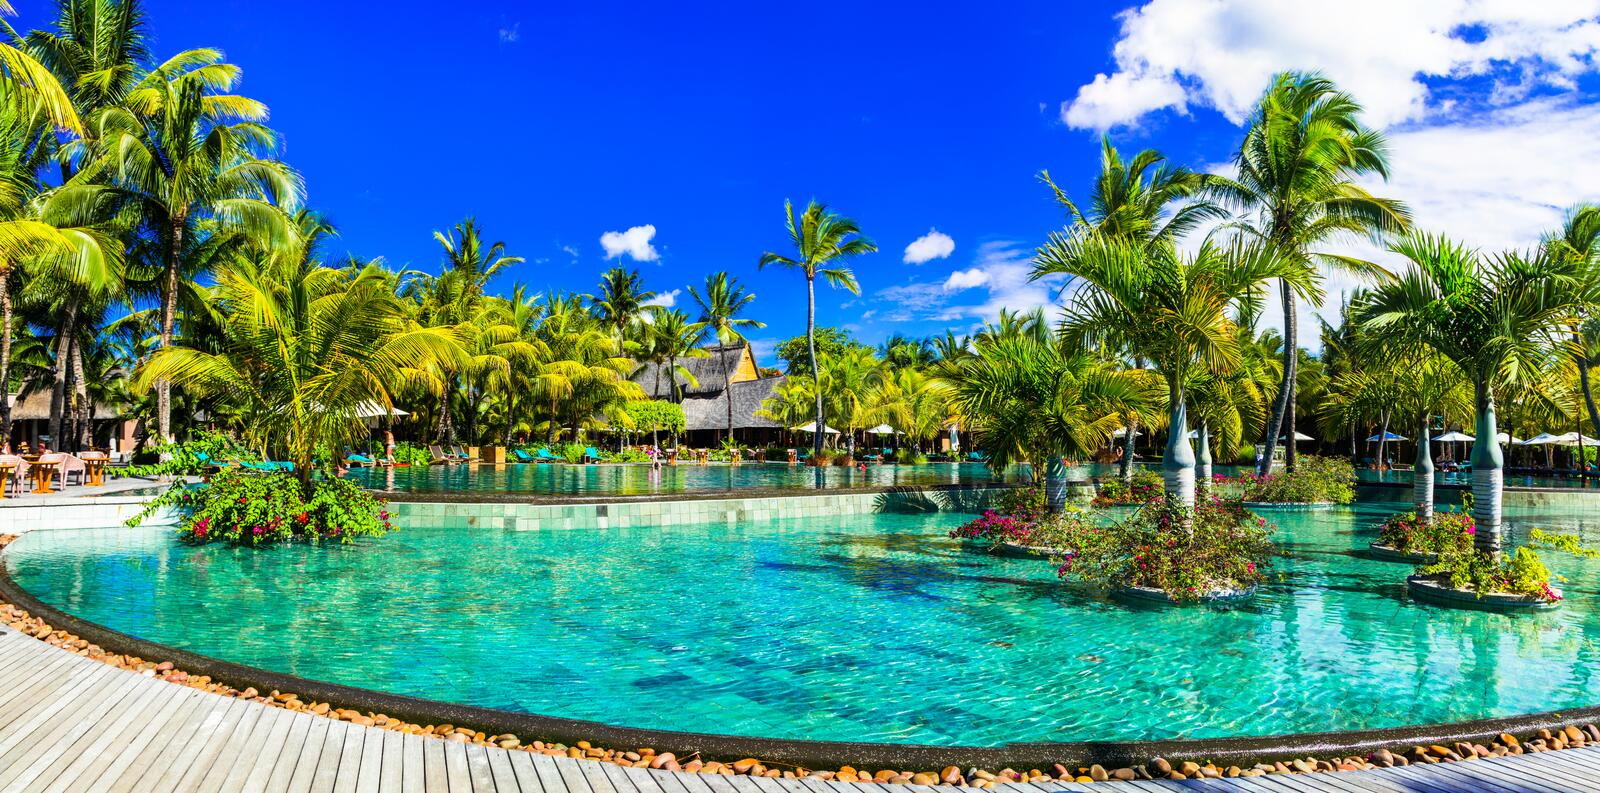 Luxury tropical vacation in Mauritius island stock photography